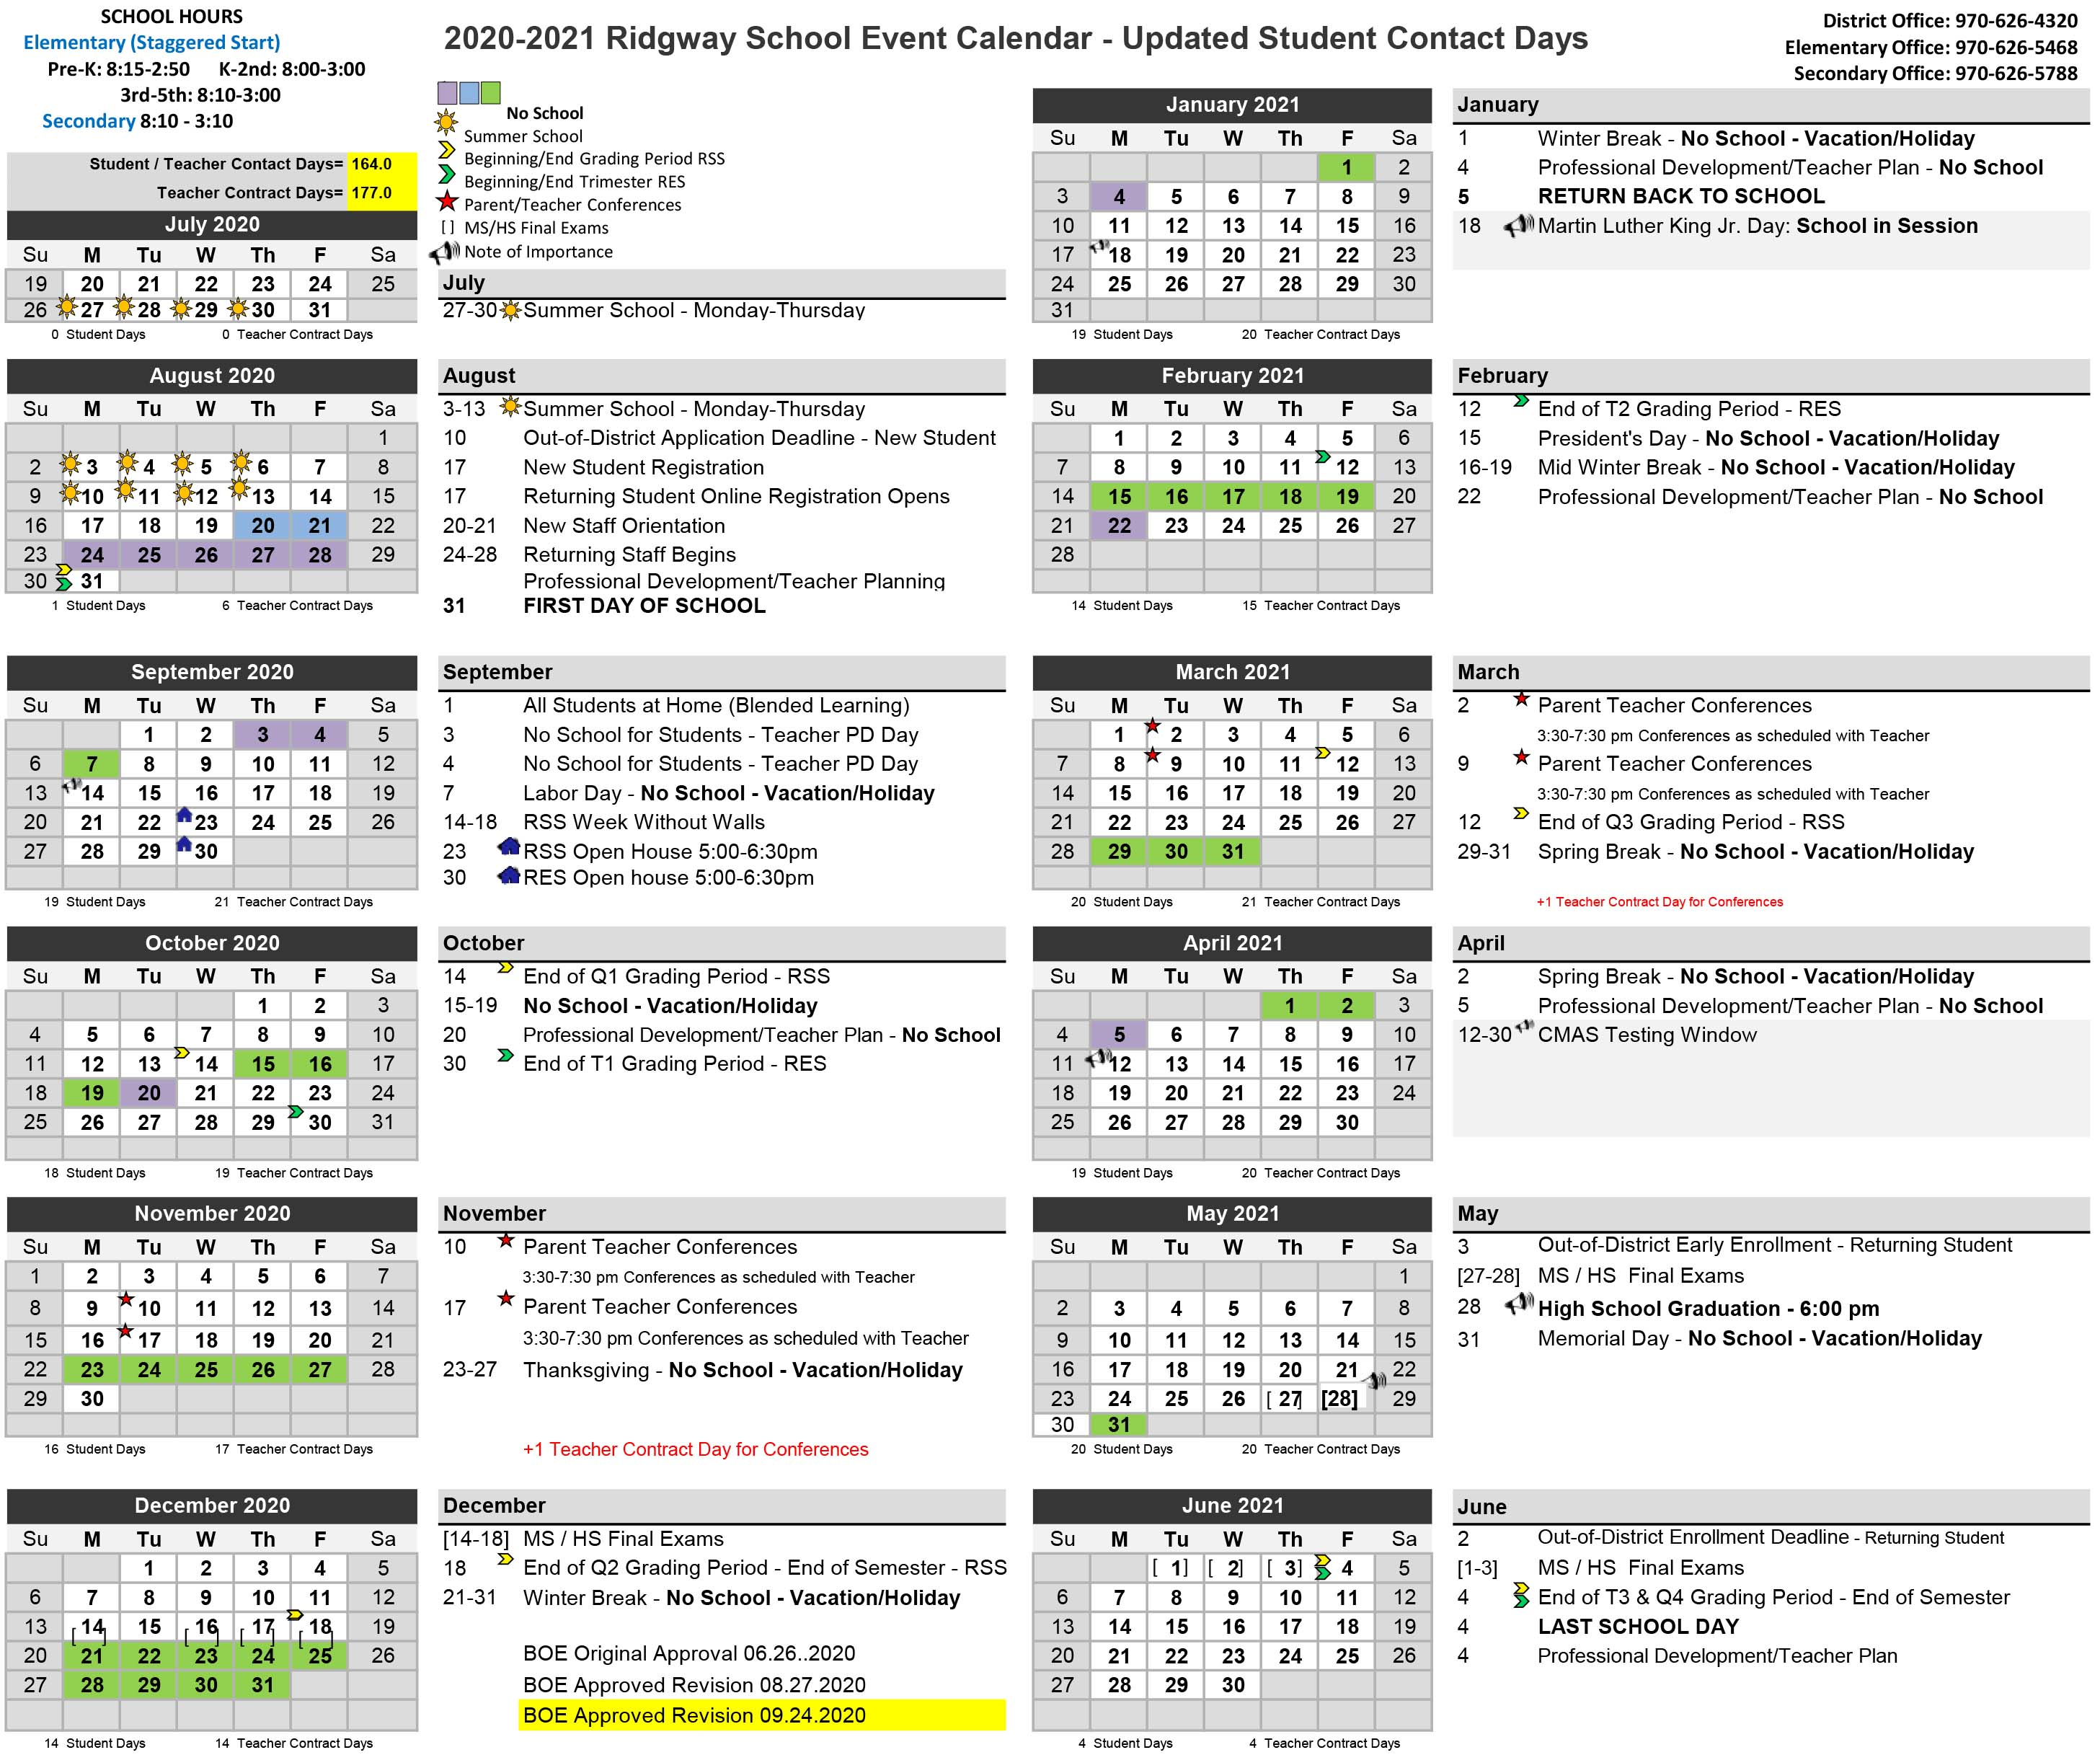 2020 2021 School Event Calendar Updated Student Contact Days 09.24.2020